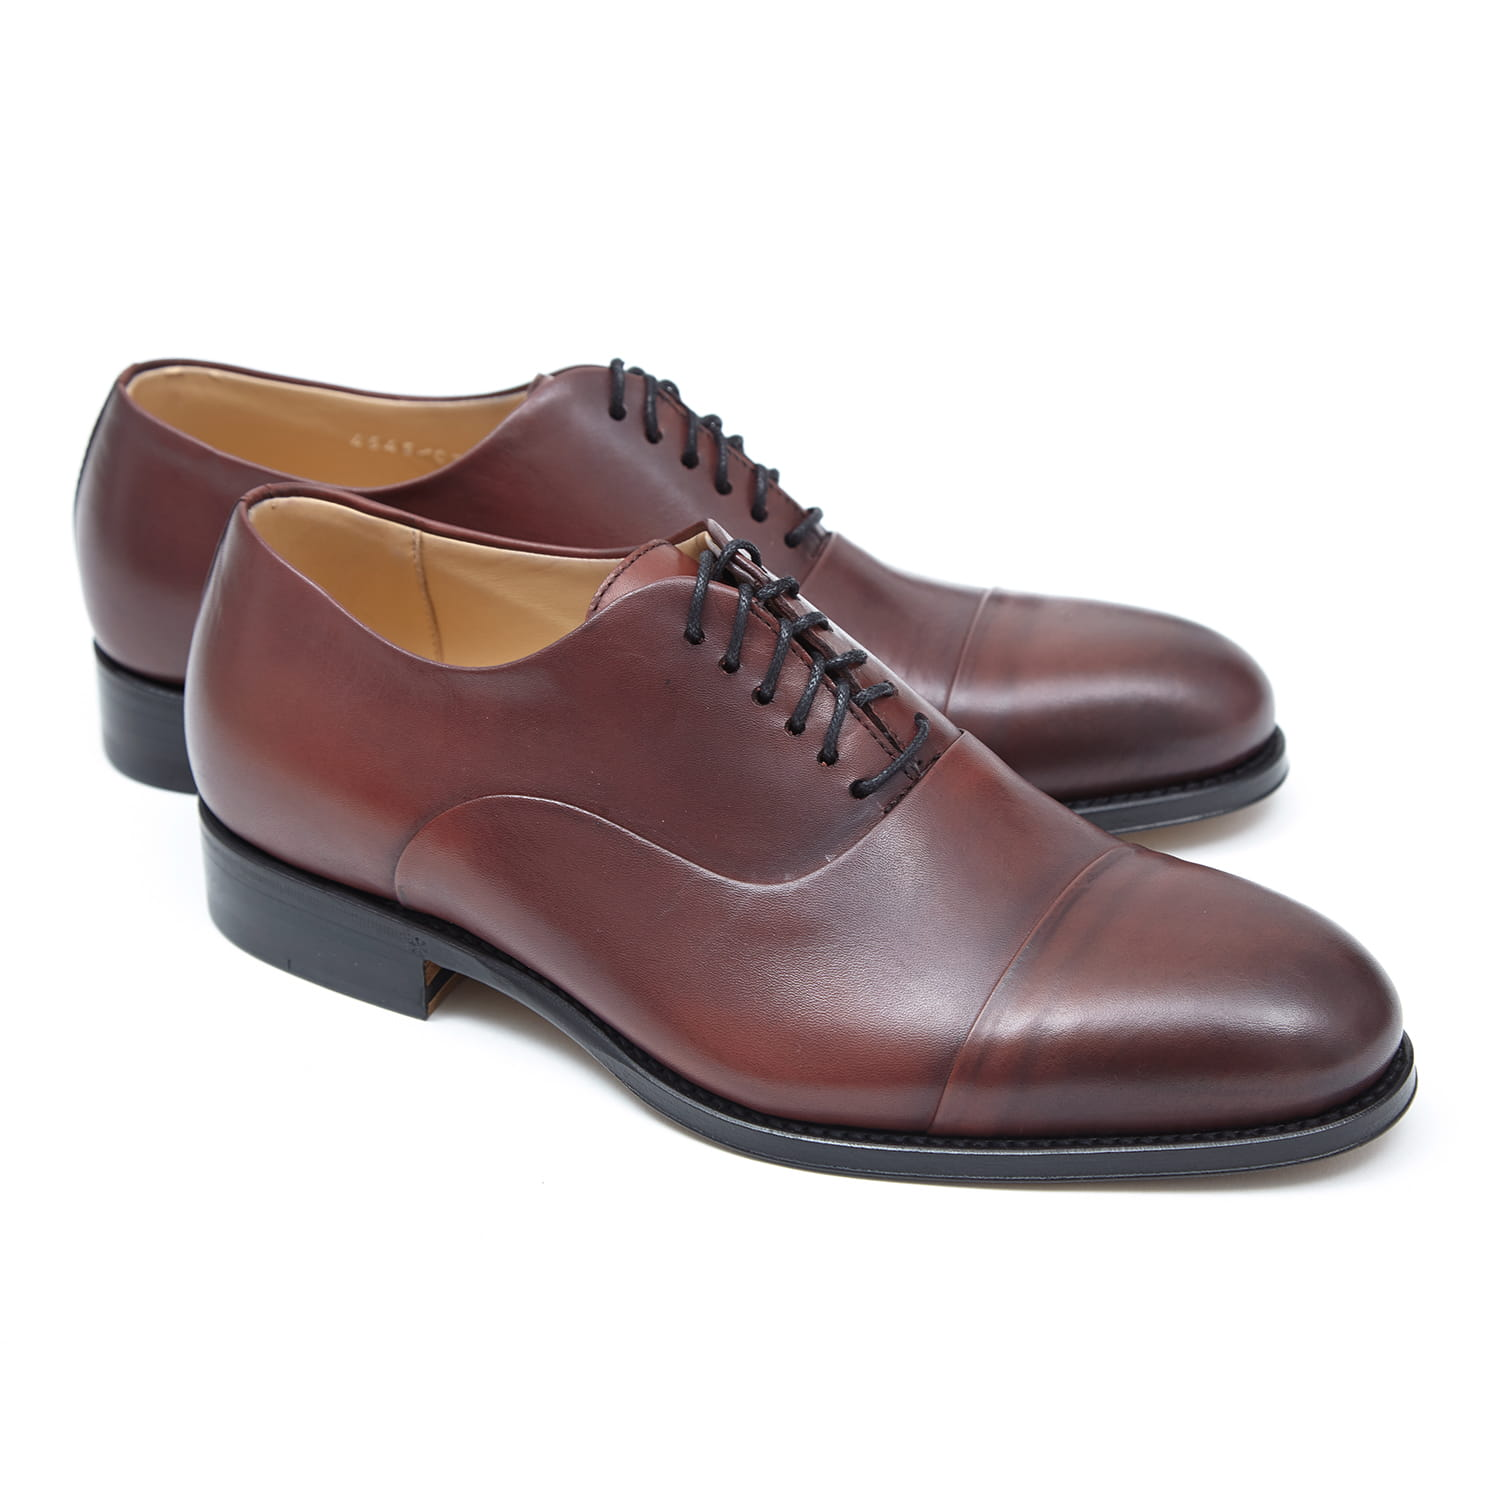 BUTY OXFORD CAP-TOE BORDOWE